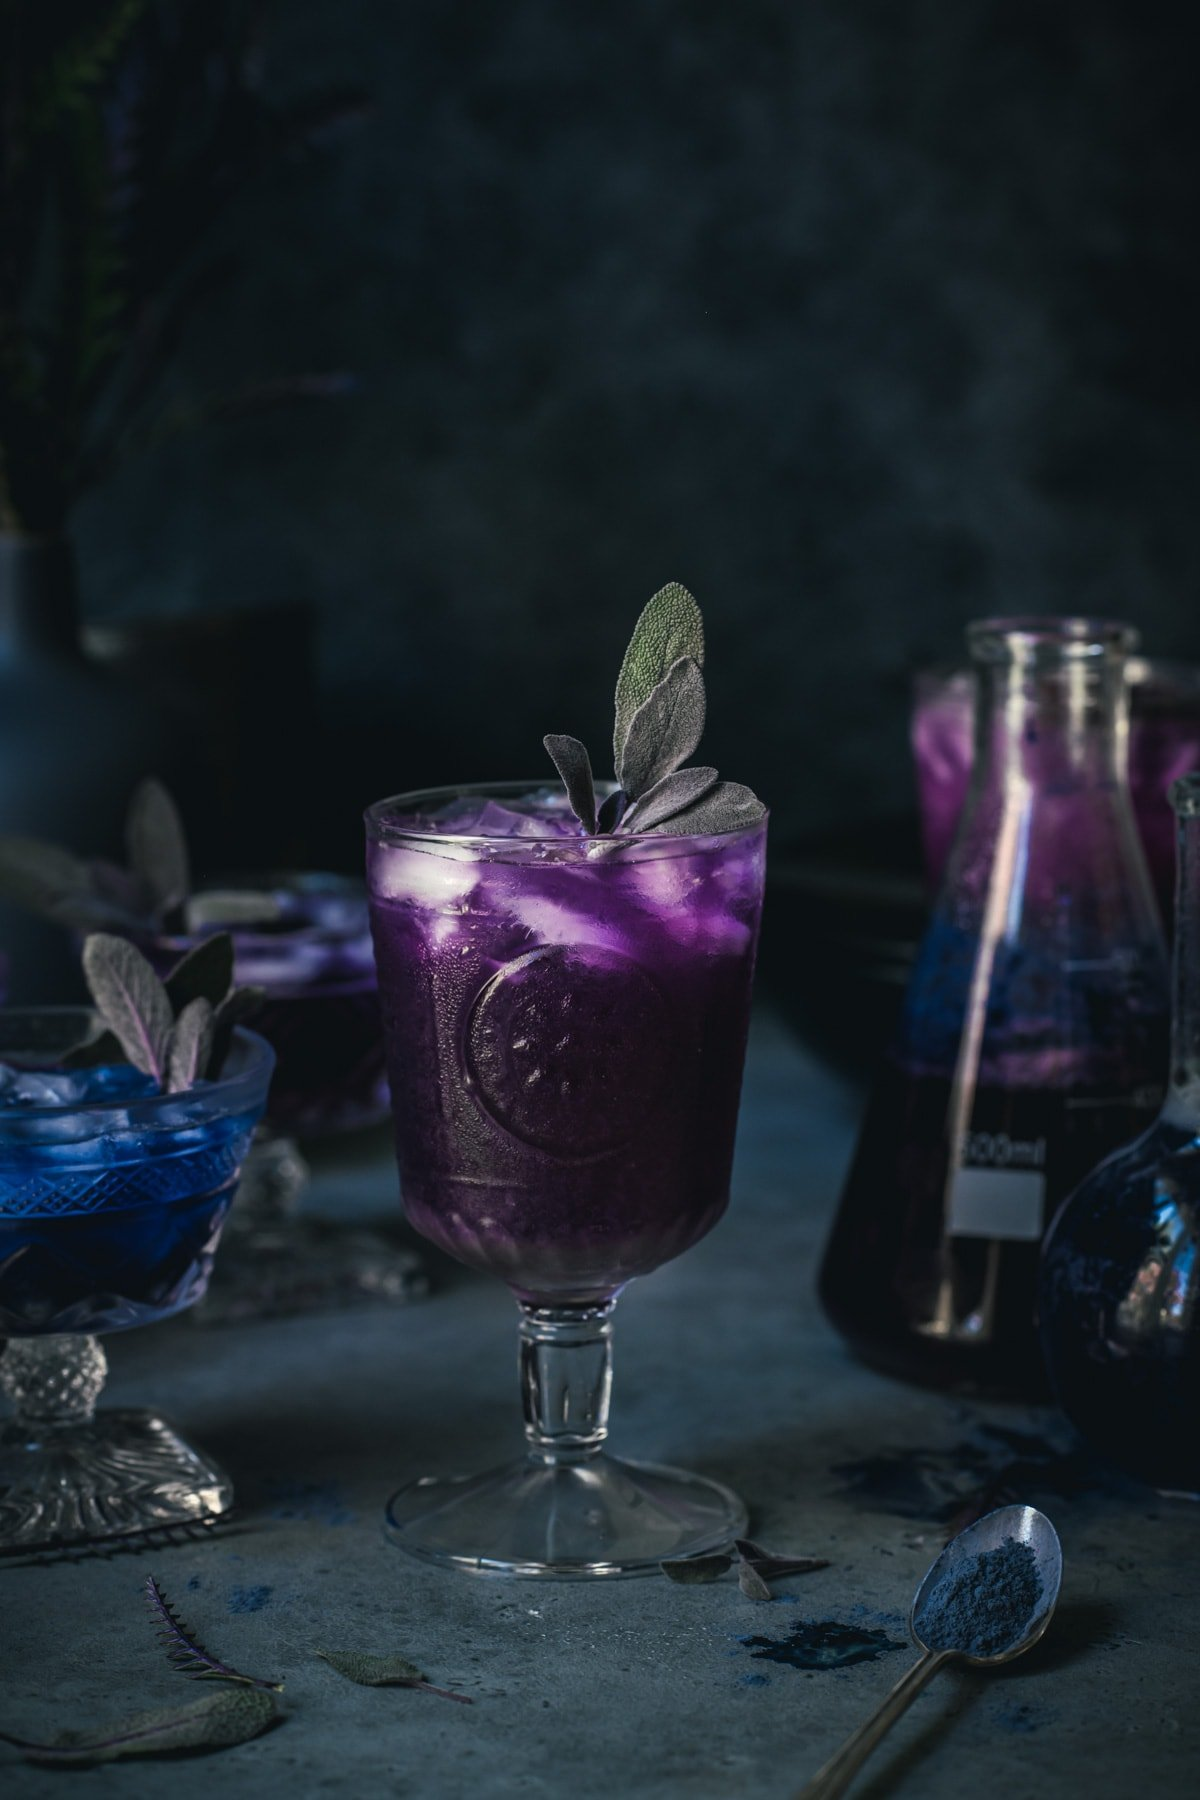 side view of a purple polyjuice potion cocktail in a glass.